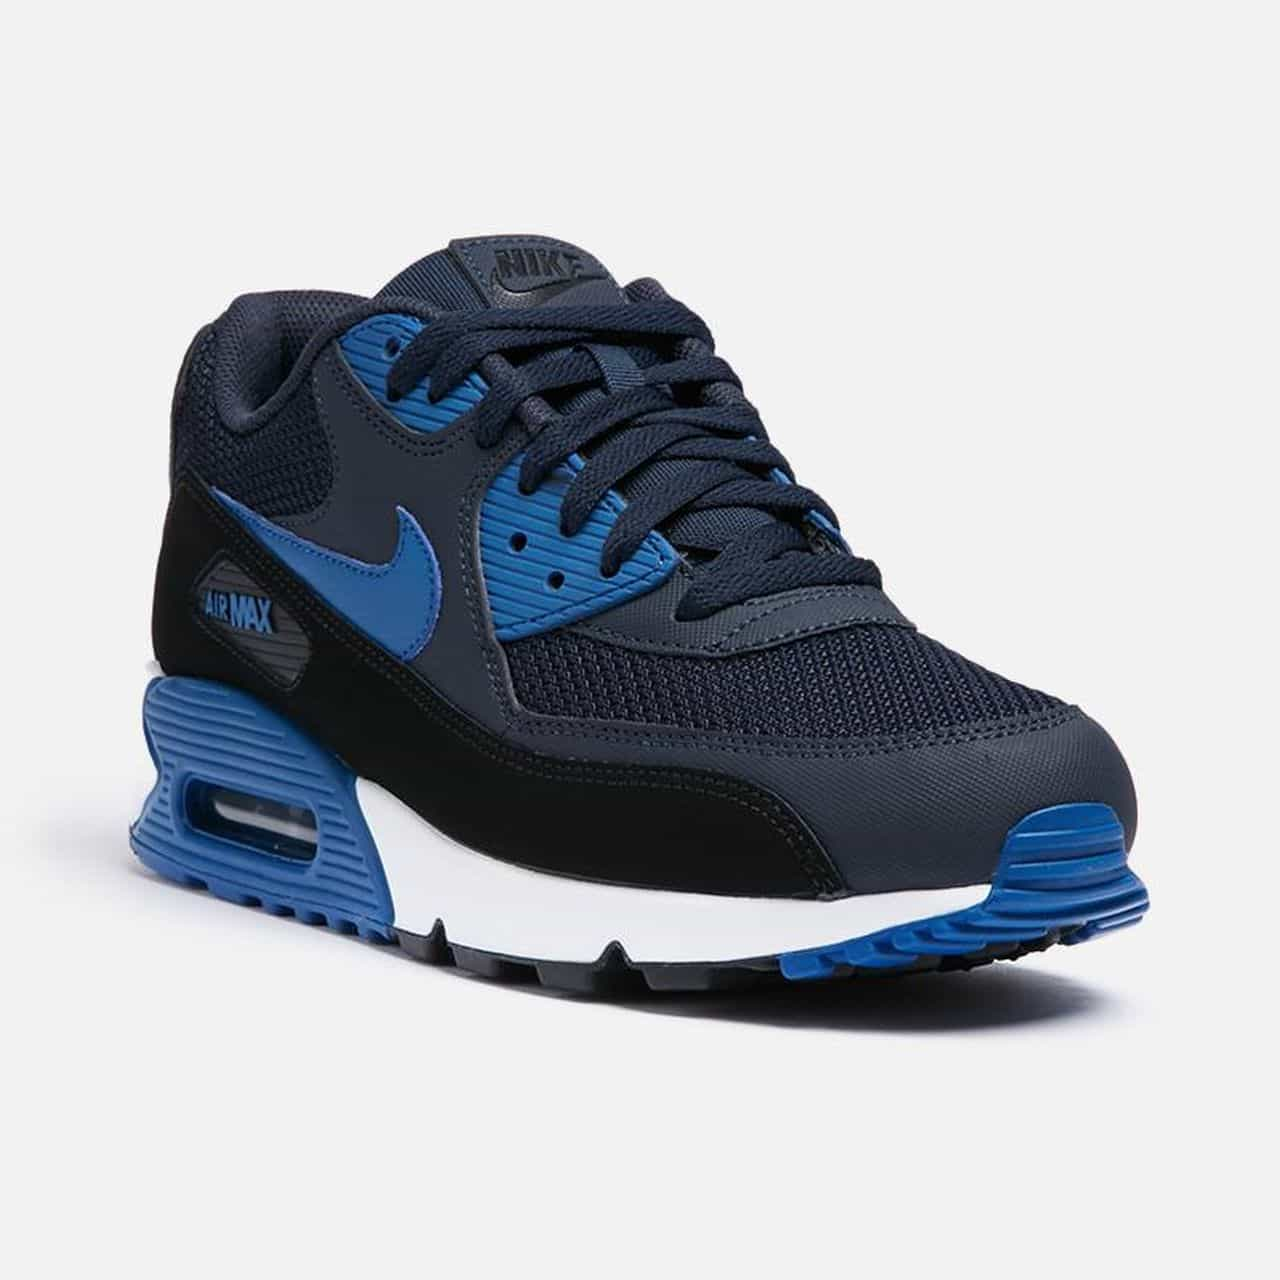 ADIDASI ORIGINALI NIKE AIR MAX 90 ESSENTIAL - 537384 417